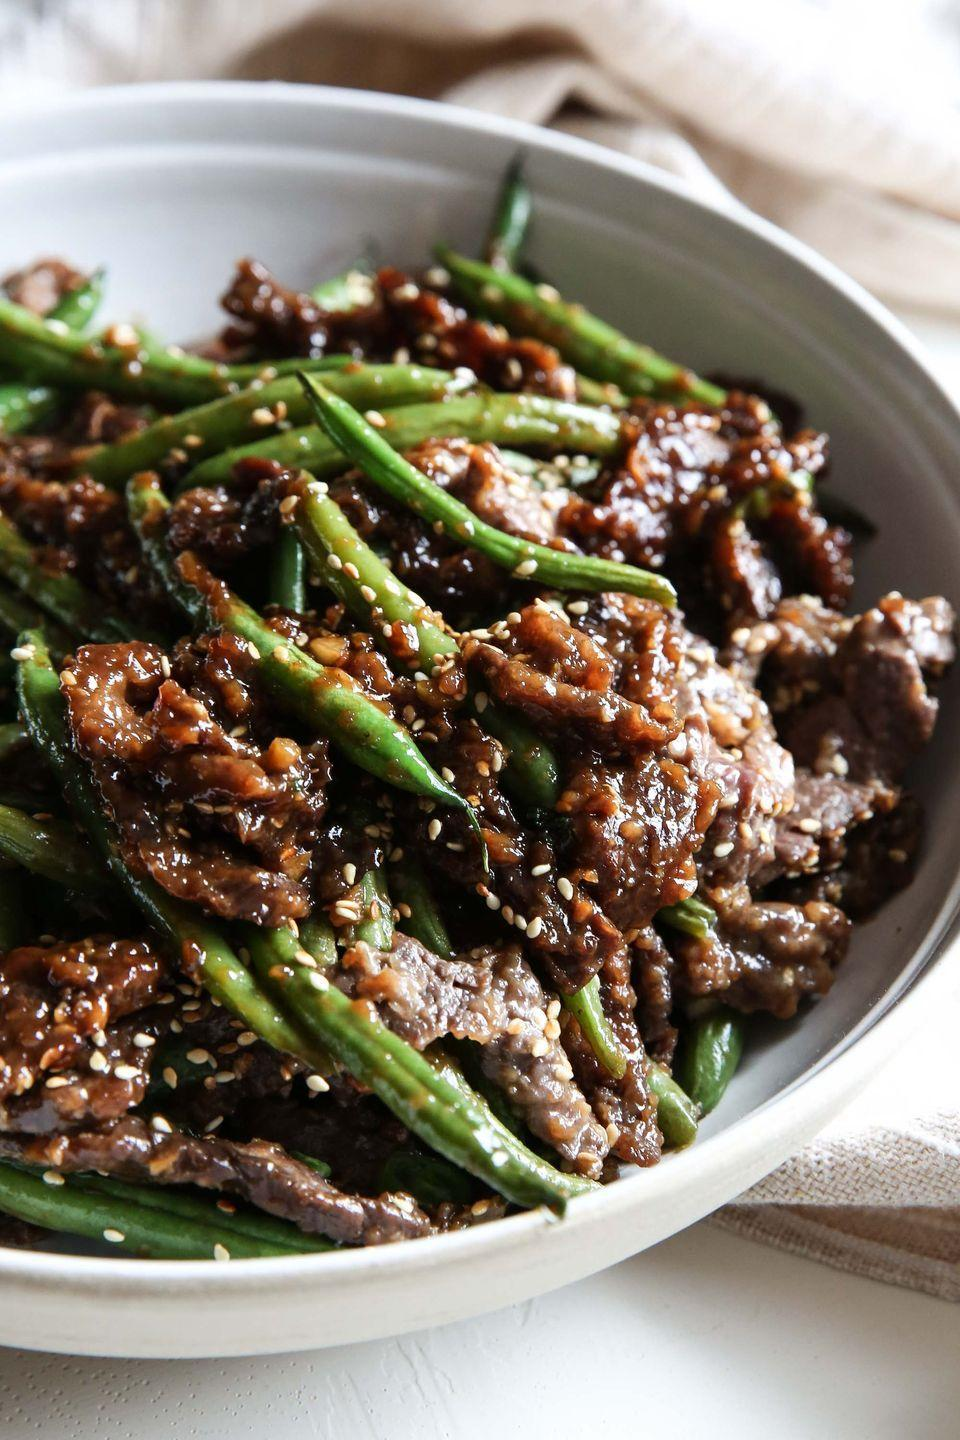 """<p>This is the most flavorful a stir-fry could ever be.</p><p>Get the recipe from <a href=""""/cooking/recipe-ideas/recipes/a51791/sesame-ginger-beef-recipe/"""" data-ylk=""""slk:Delish"""" class=""""link rapid-noclick-resp"""">Delish</a>.</p>"""